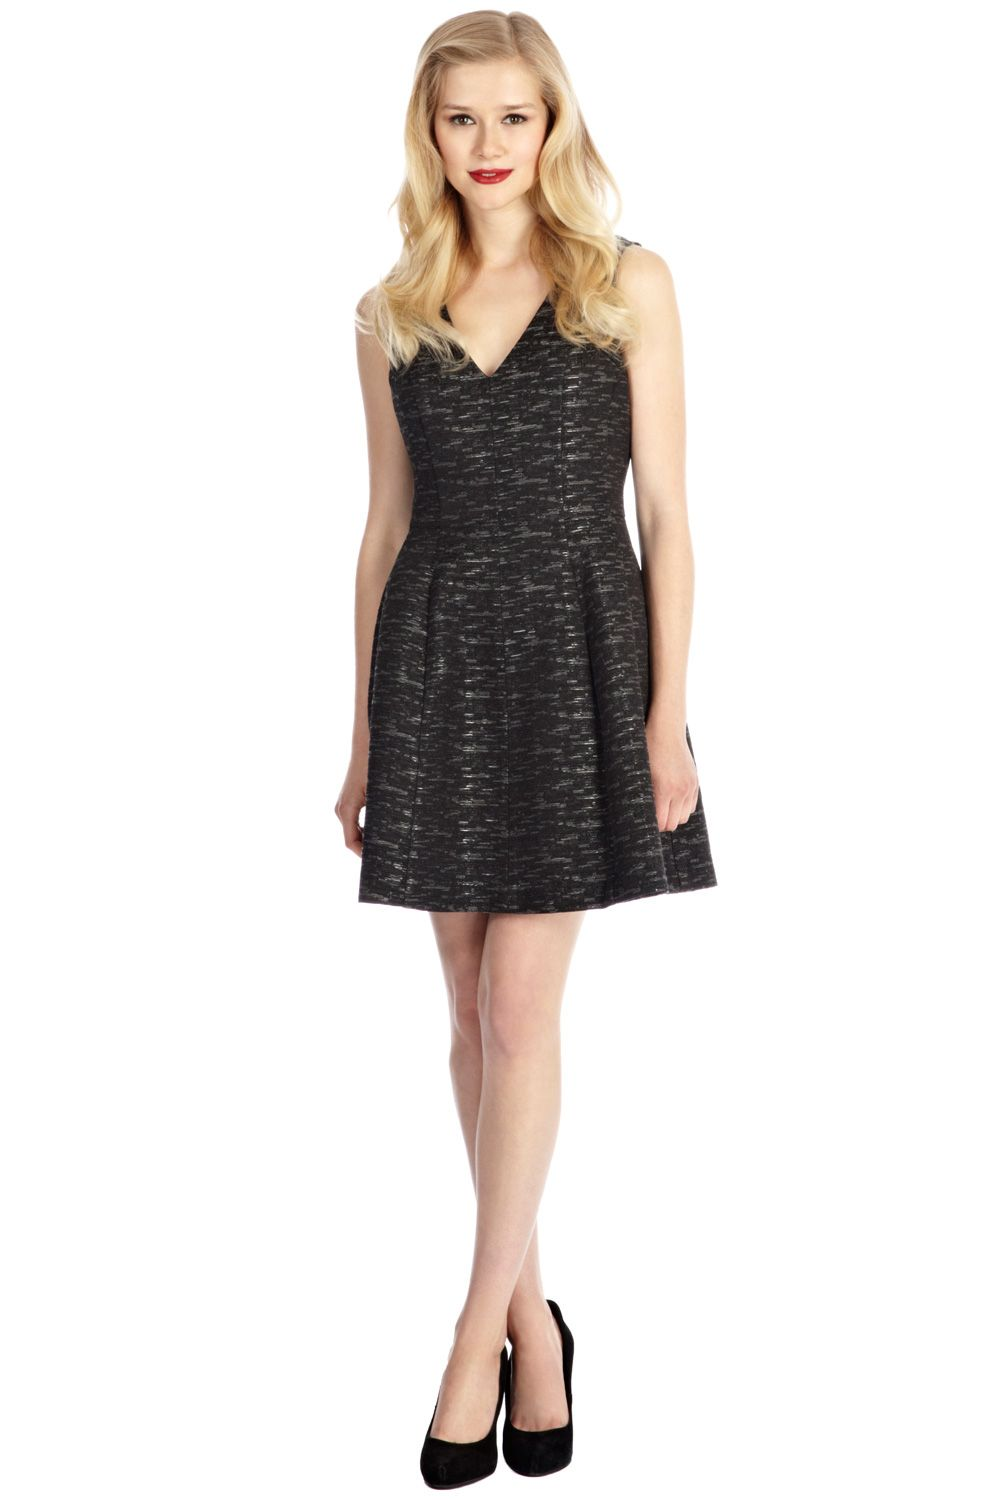 Sparkle amelie dress